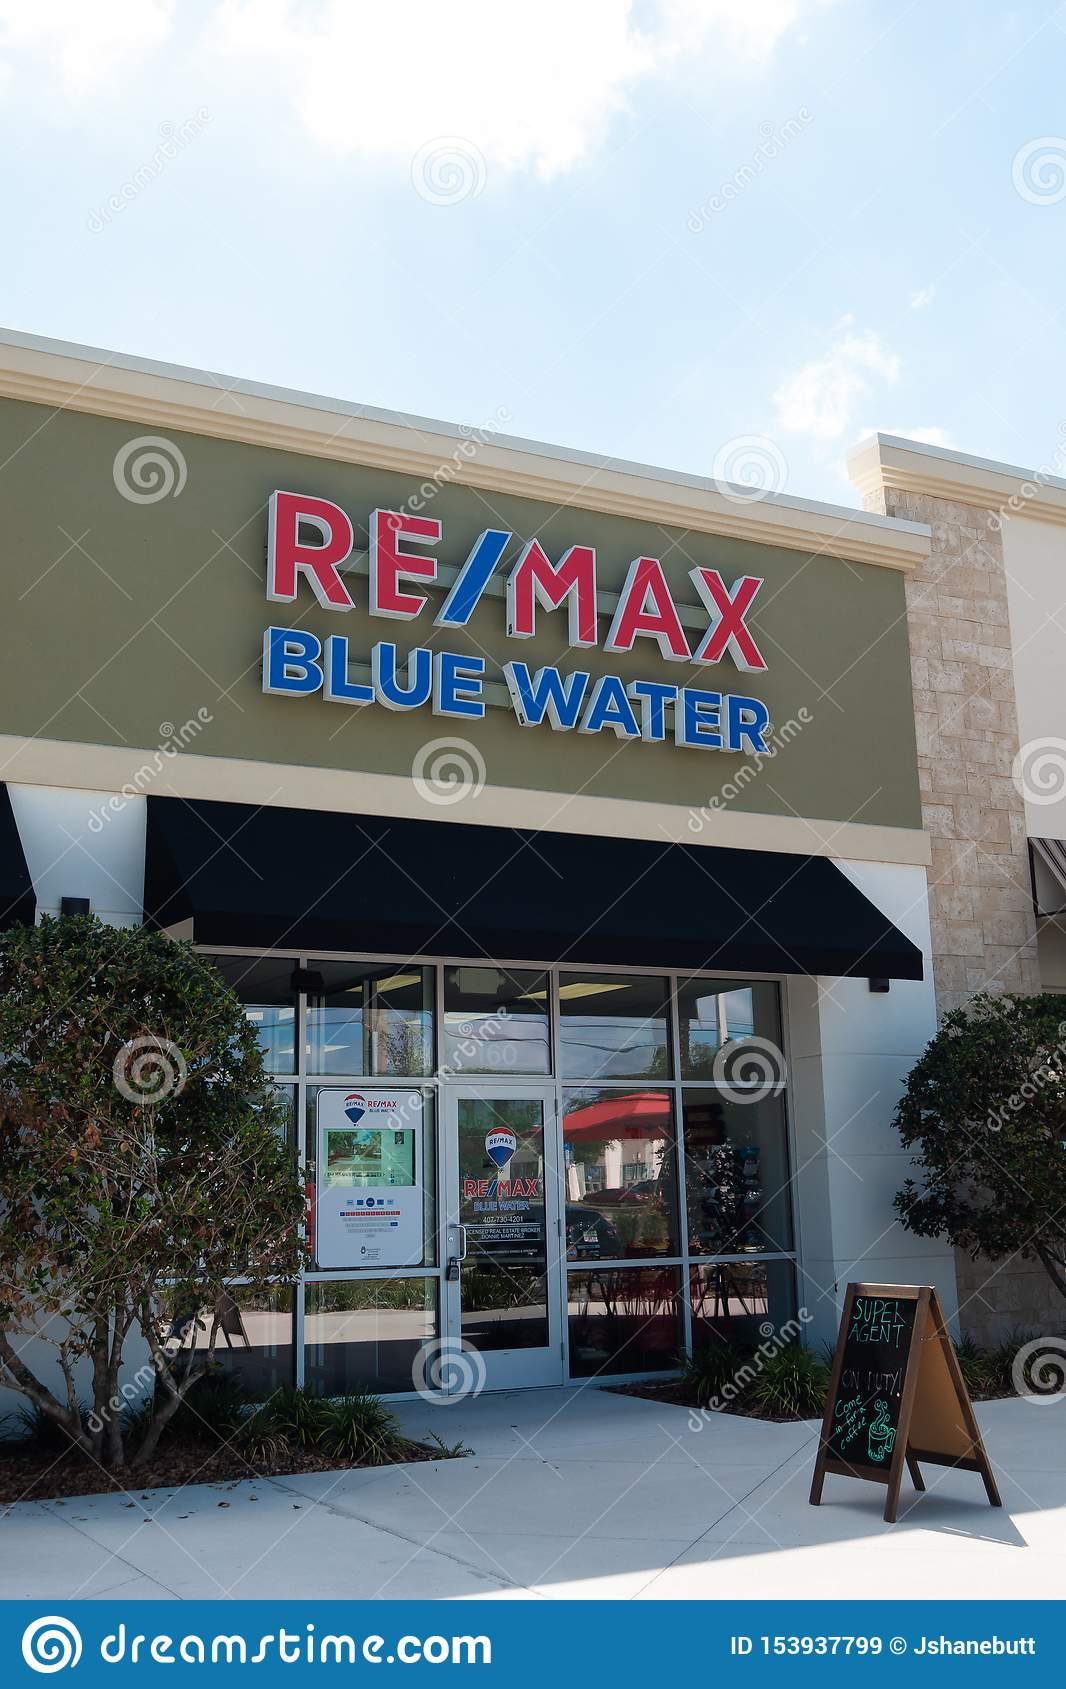 RE/MAX, short for Real Estate Maximums